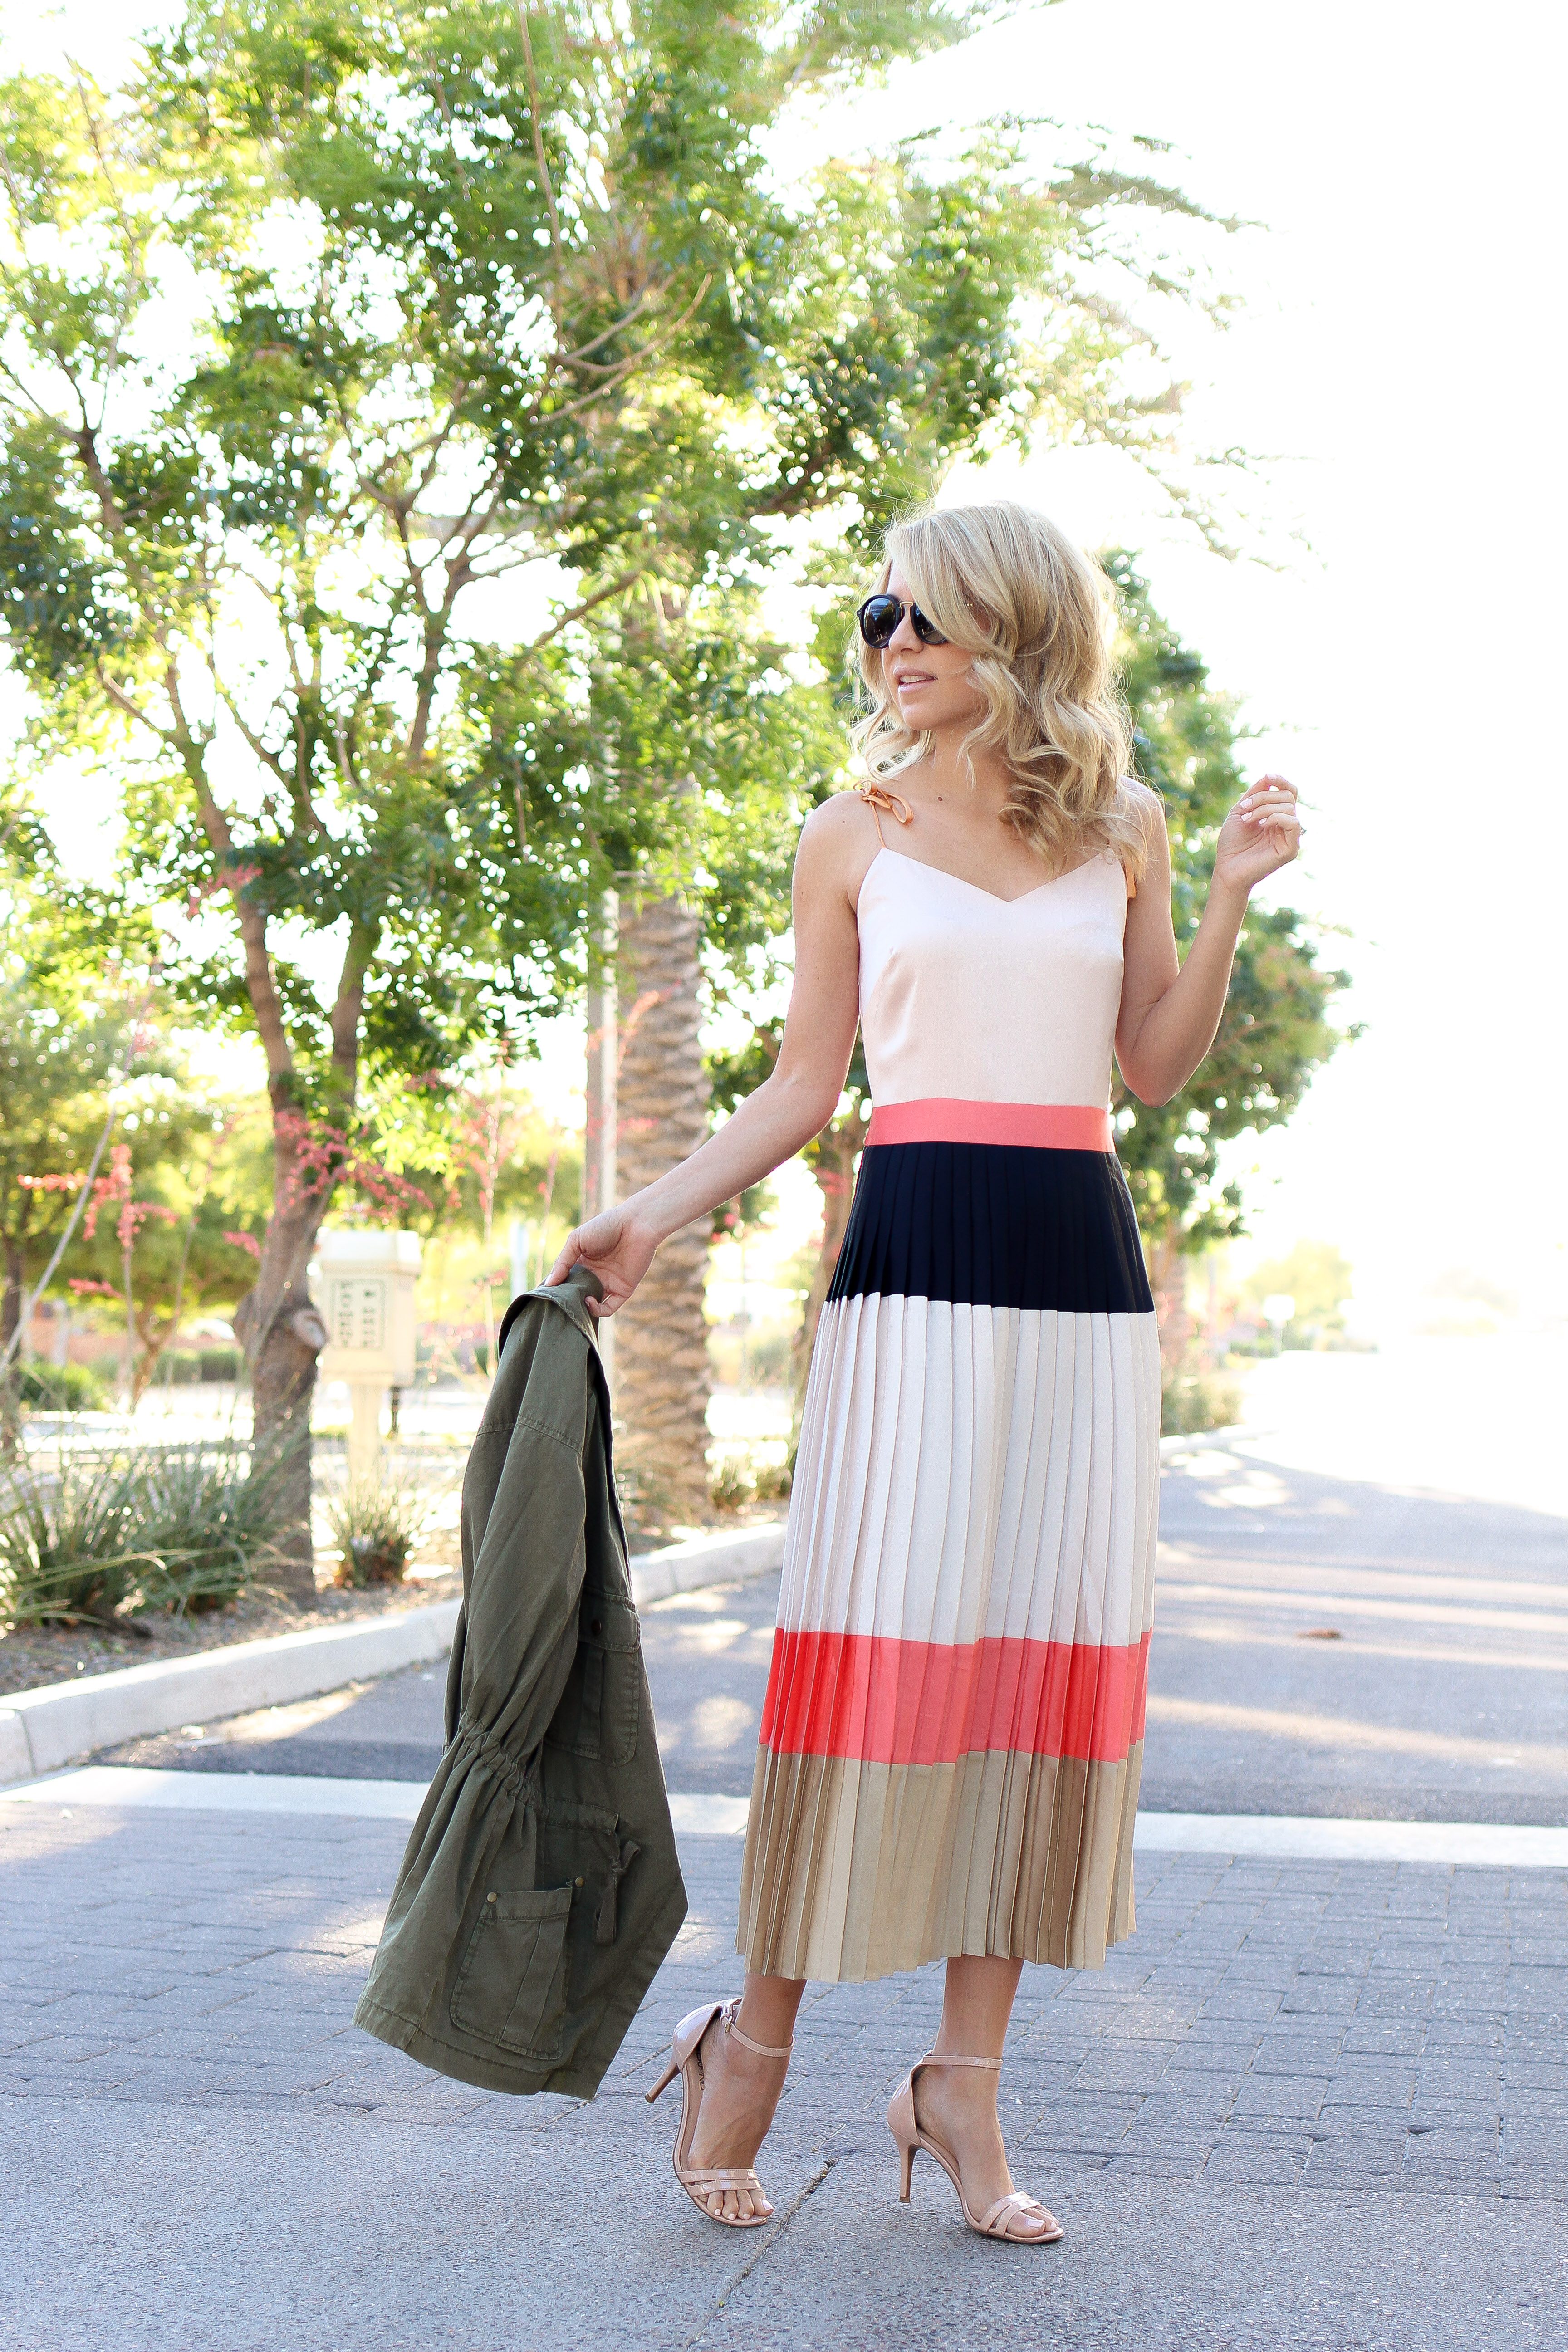 1c8d07d66af Banana republic – Pleated Dress – Color Block Outfit – Summer Style2497